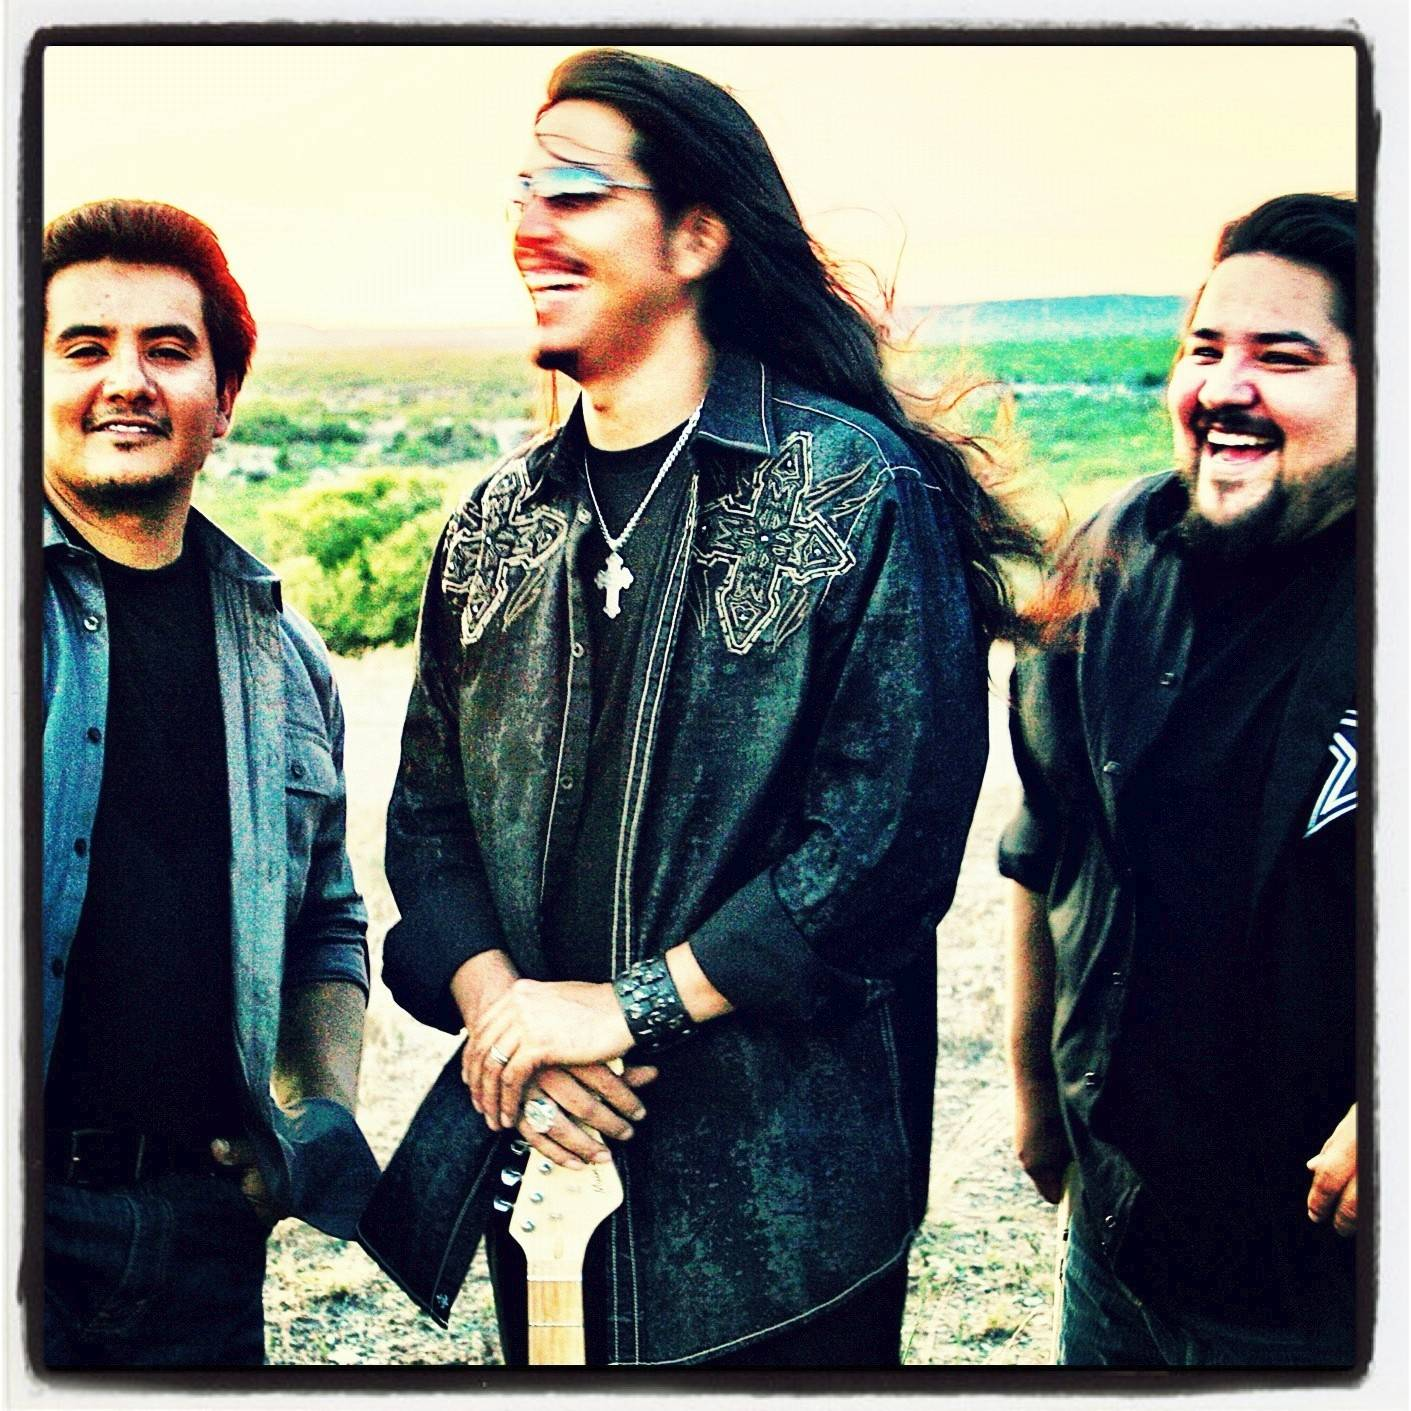 Los Lonely Boys perform at the Blues on Fox Festival at RiverEdge Park in Aurora at 9 p.m. Saturday, June 28.